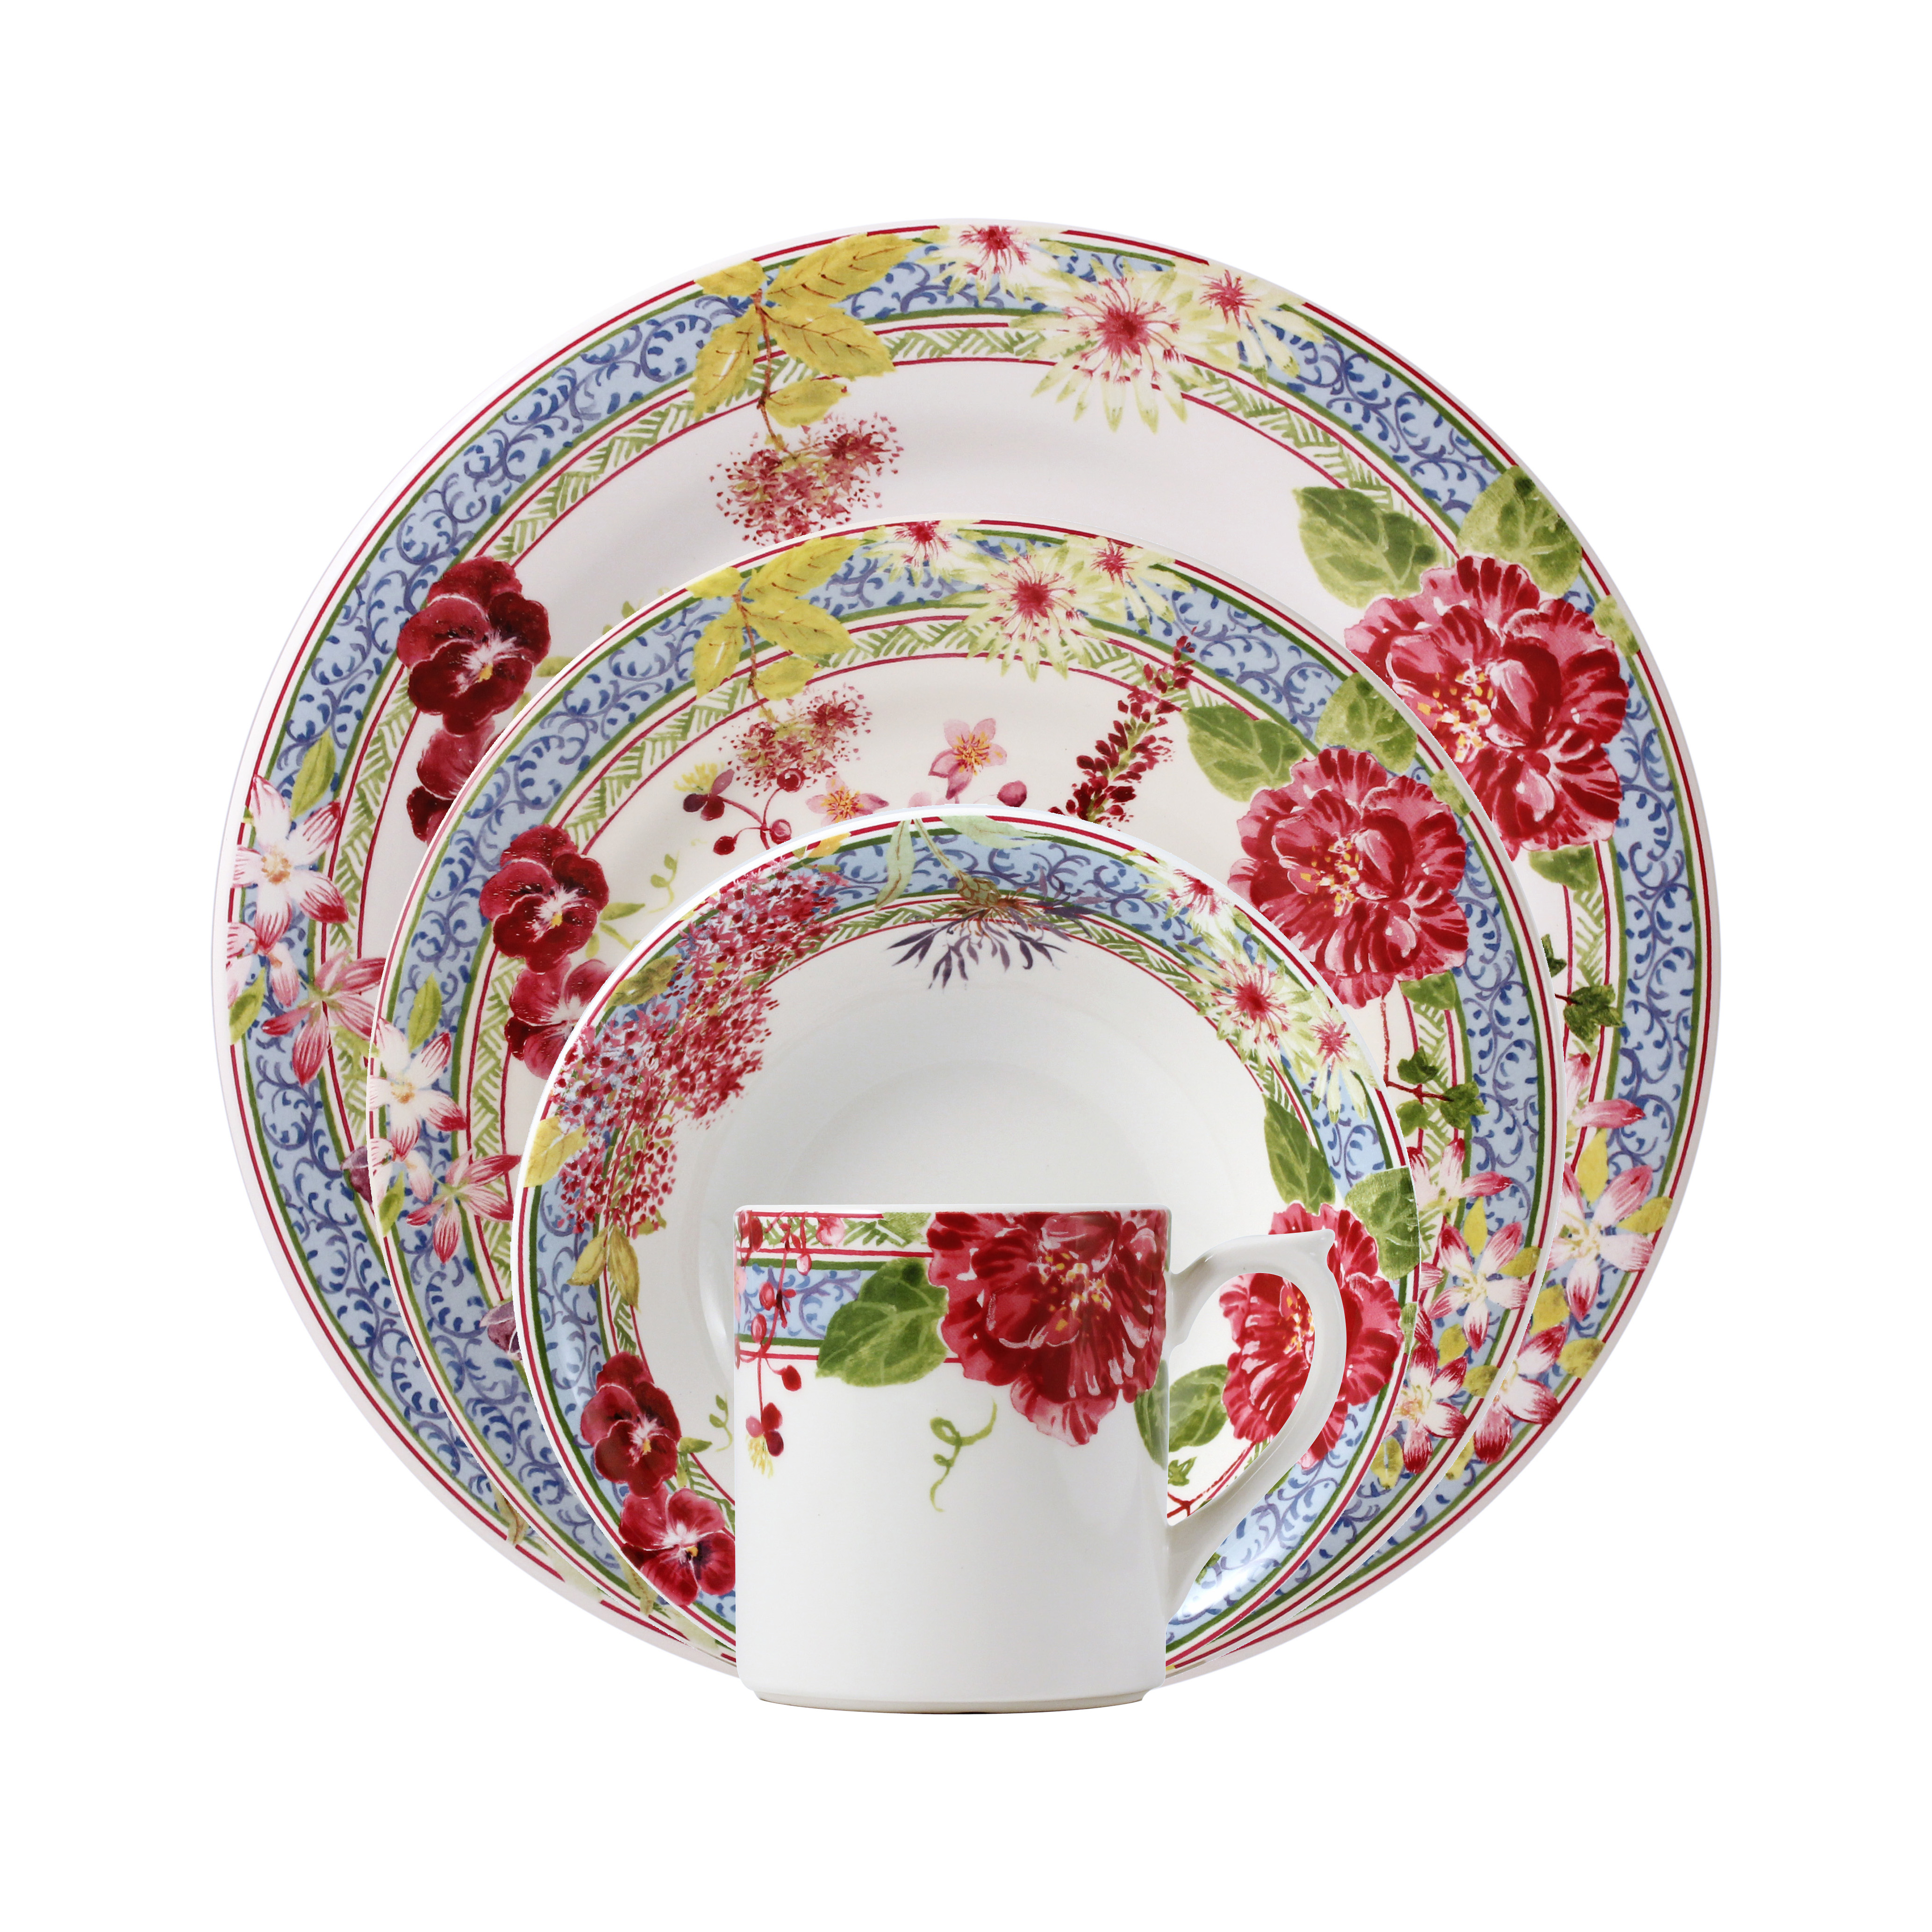 Gien Millefleurs 4 Piece Place Setting- allow 6-8 weeks